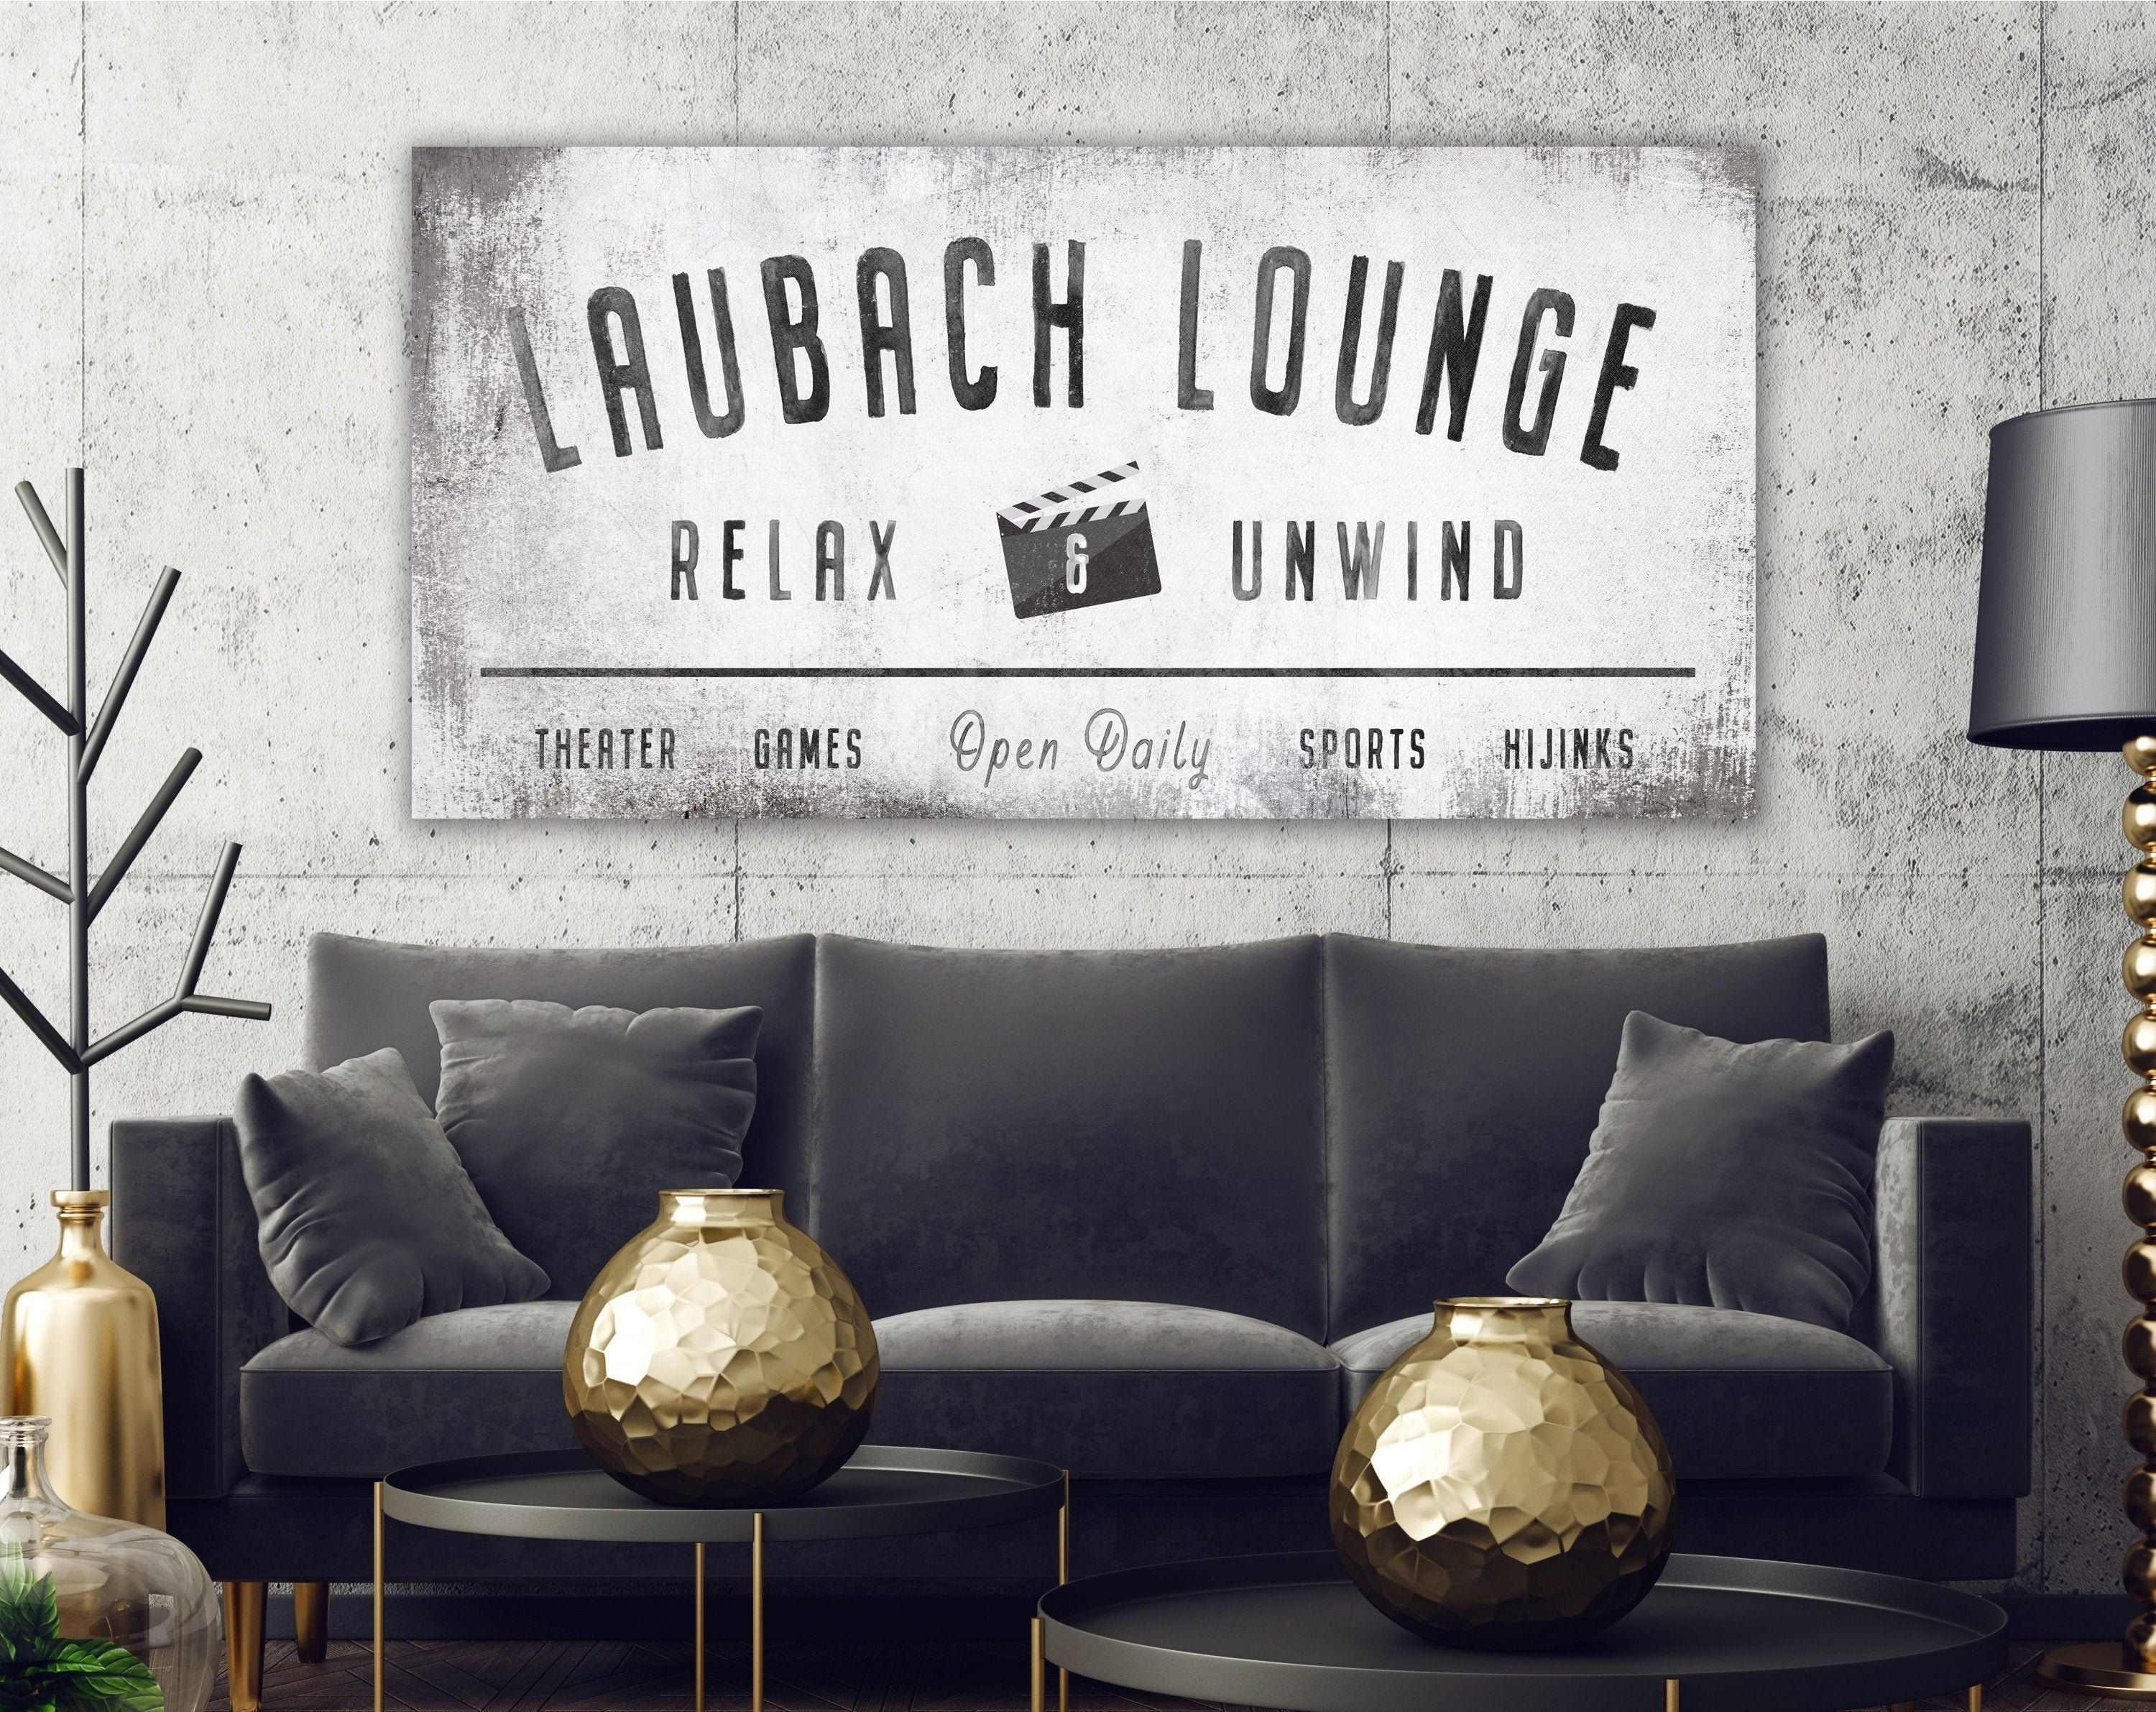 Modern Farmhouse Wall Decor Family Lounge Sign, Personalized Last Name Sign for Living Room, Vintage Industrial Wall Art for Game Movie Room #decor #family #farmhouse #living #lounge #Modern #personalized  What's Dwelling Theater System The unit choices providing photographs are very broad from regular tube tv to plasma display screen. It may also be attainable to make use of present tv to create residence cinema. The particular state of affairs is barely totally different by way of video gamer